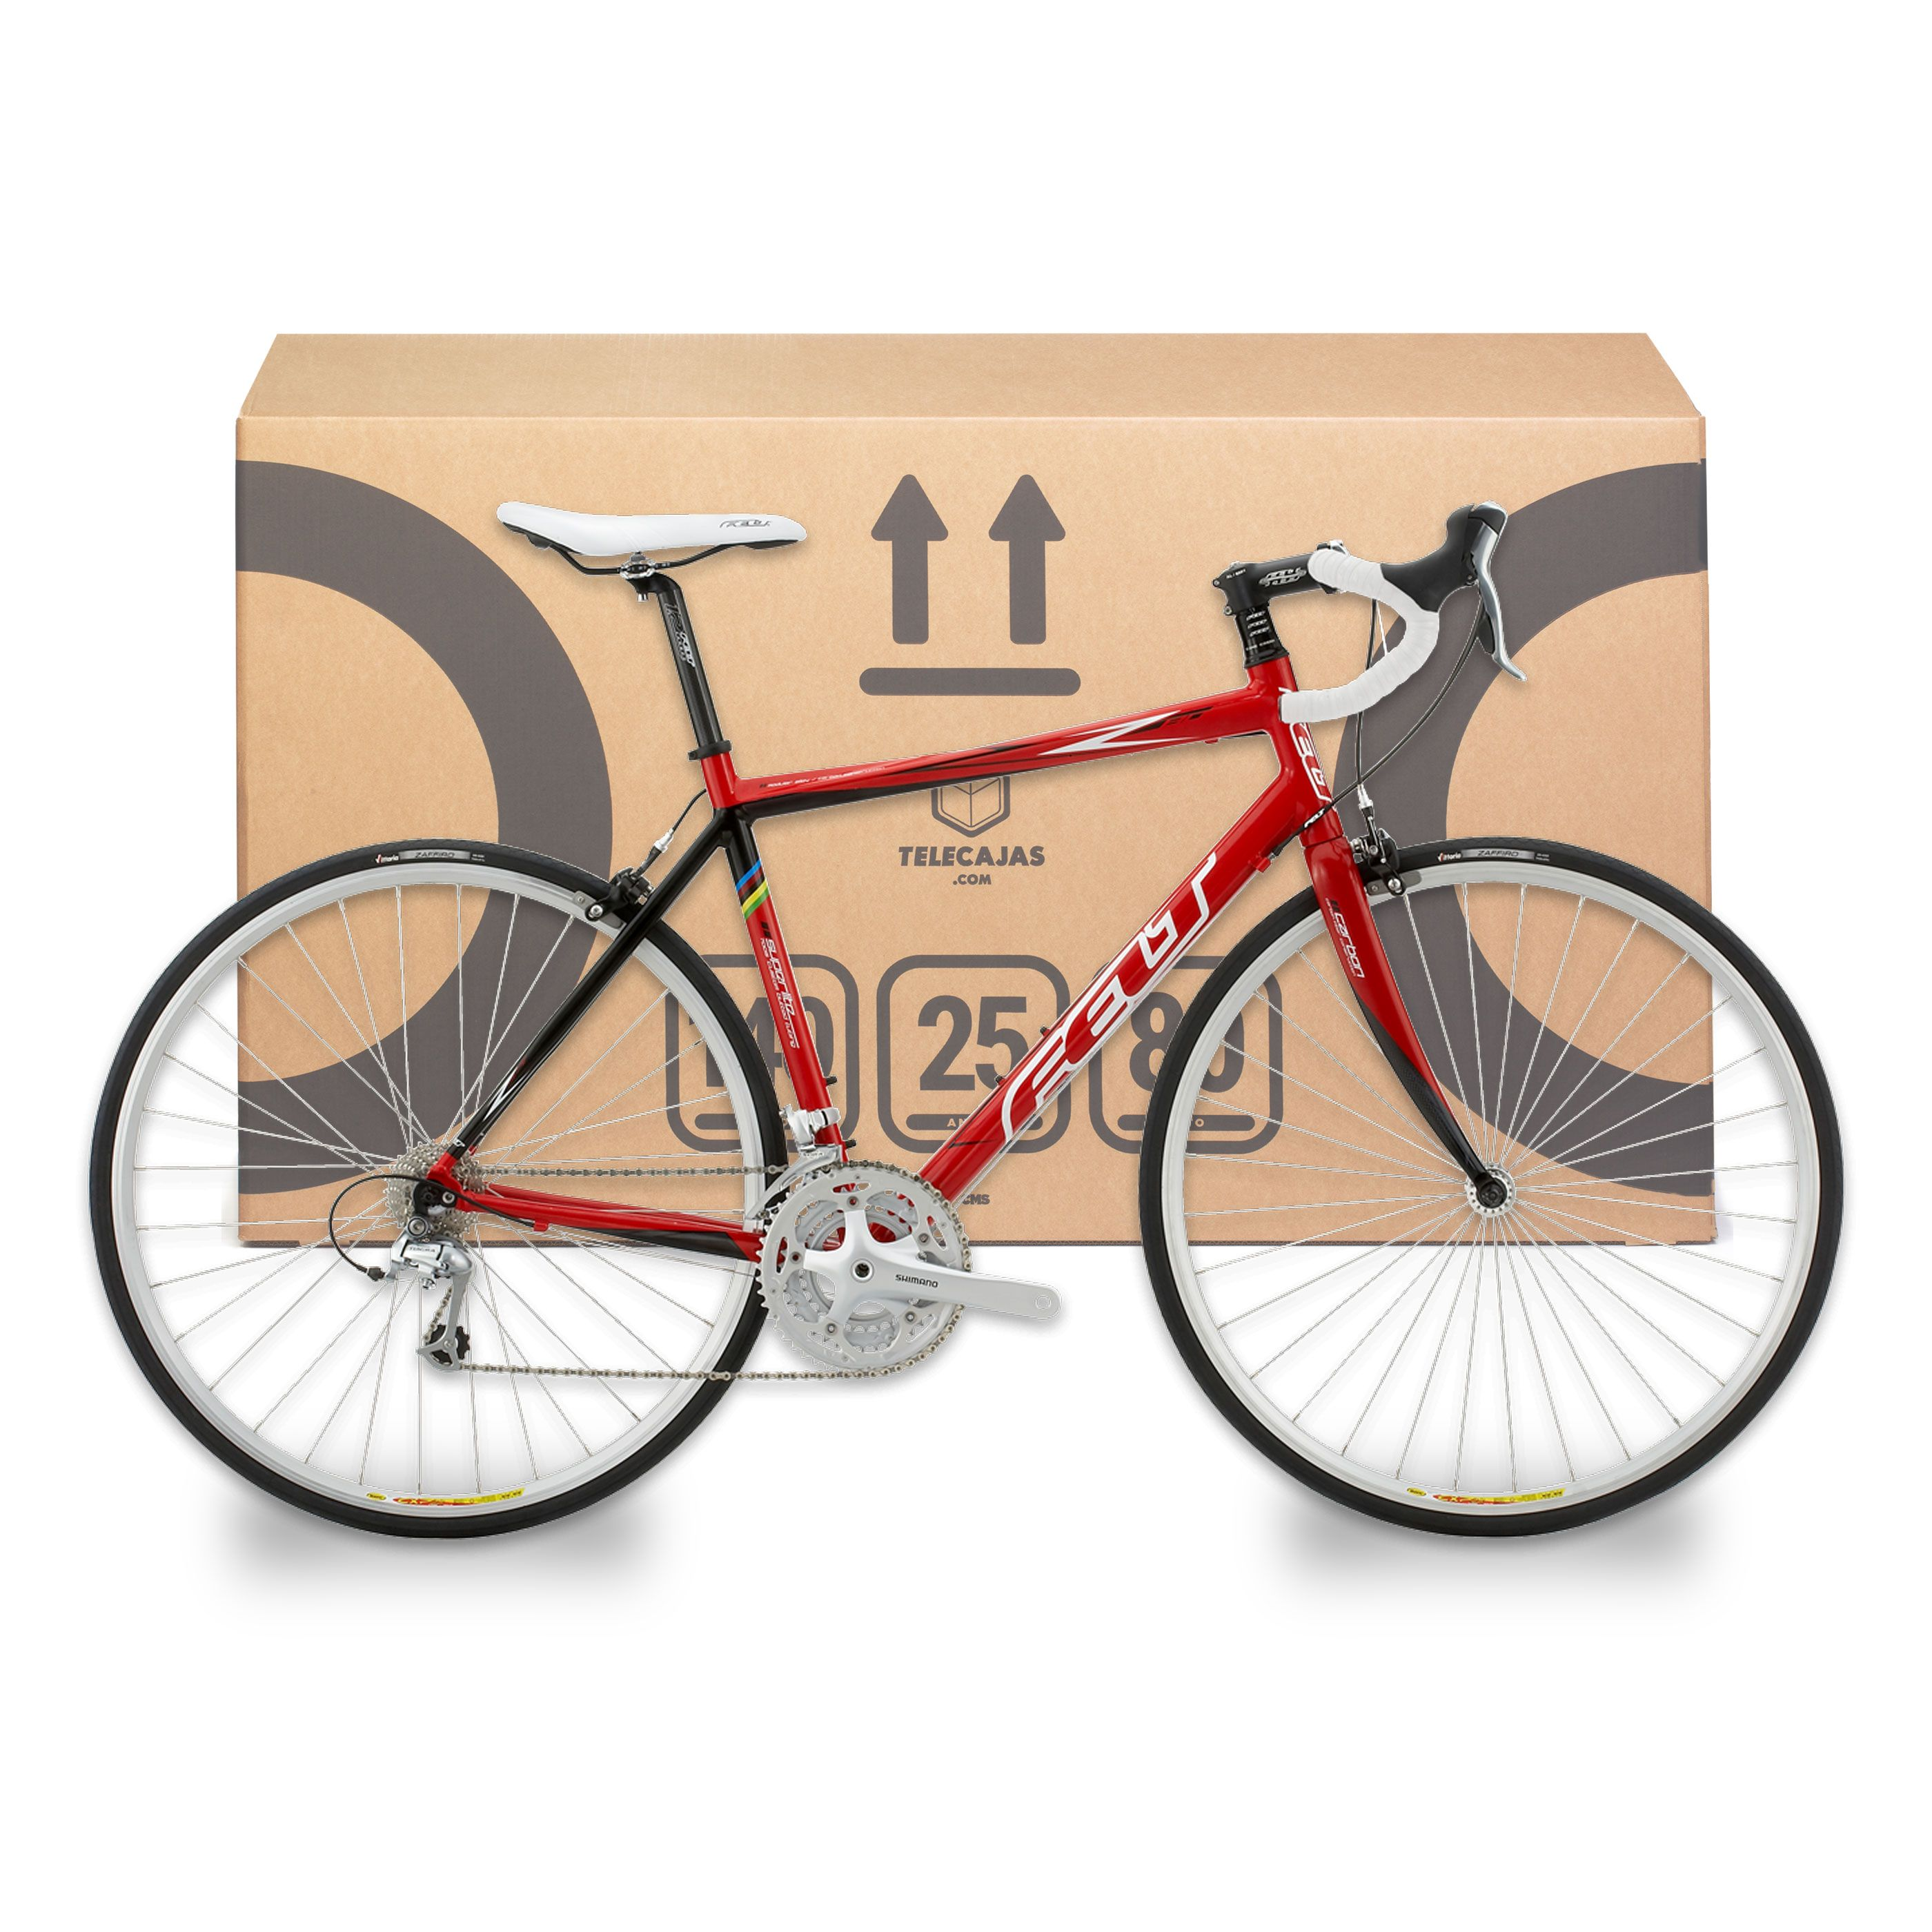 Large Bike Cycling Cardboard Shipping Box Ideal For Frame Or Complete Bike*